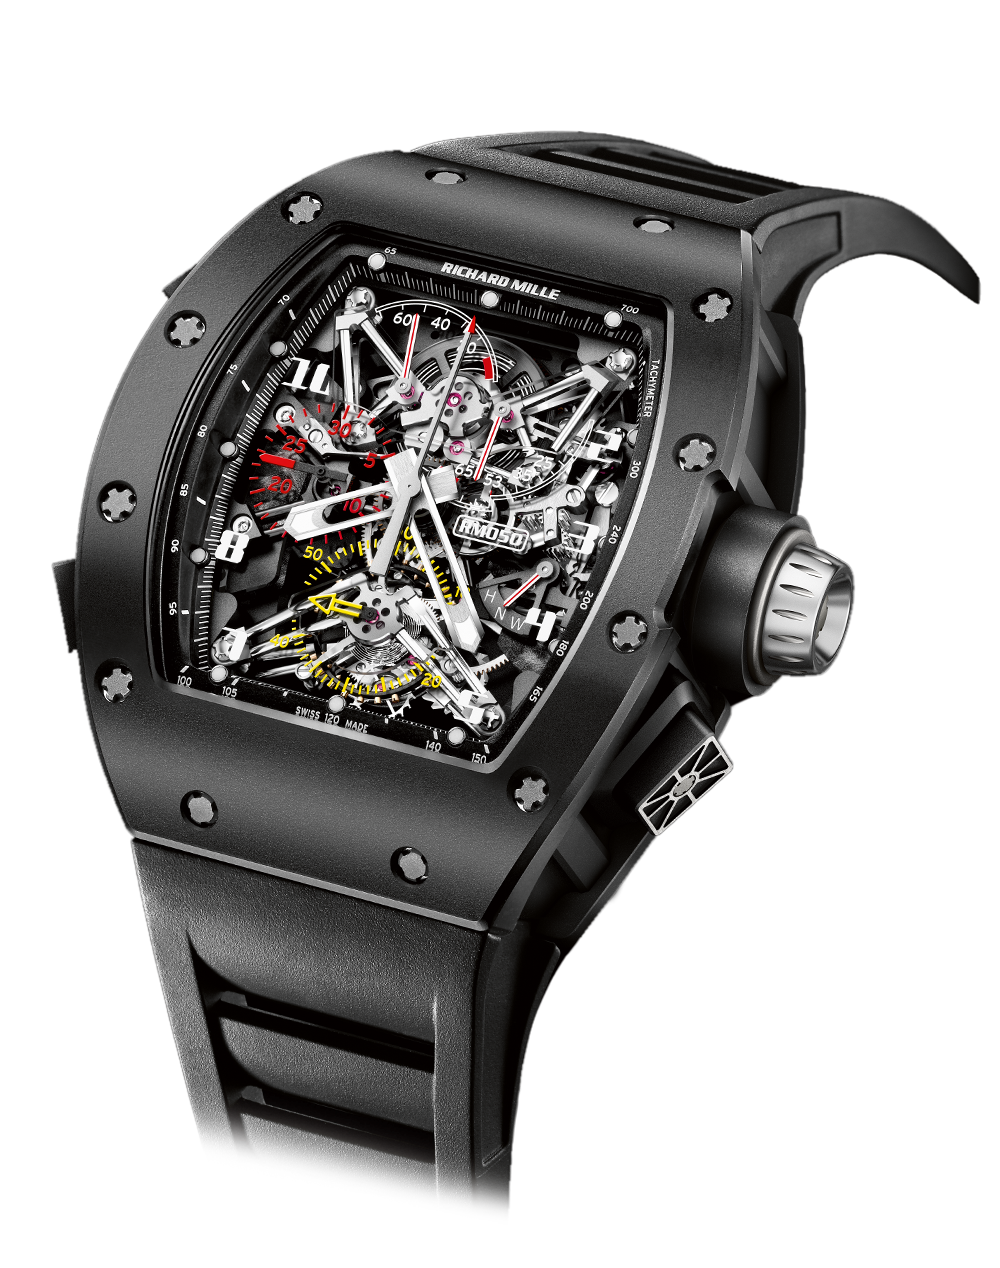 Rm 050-tourbillon competition chronograph - felipe massa